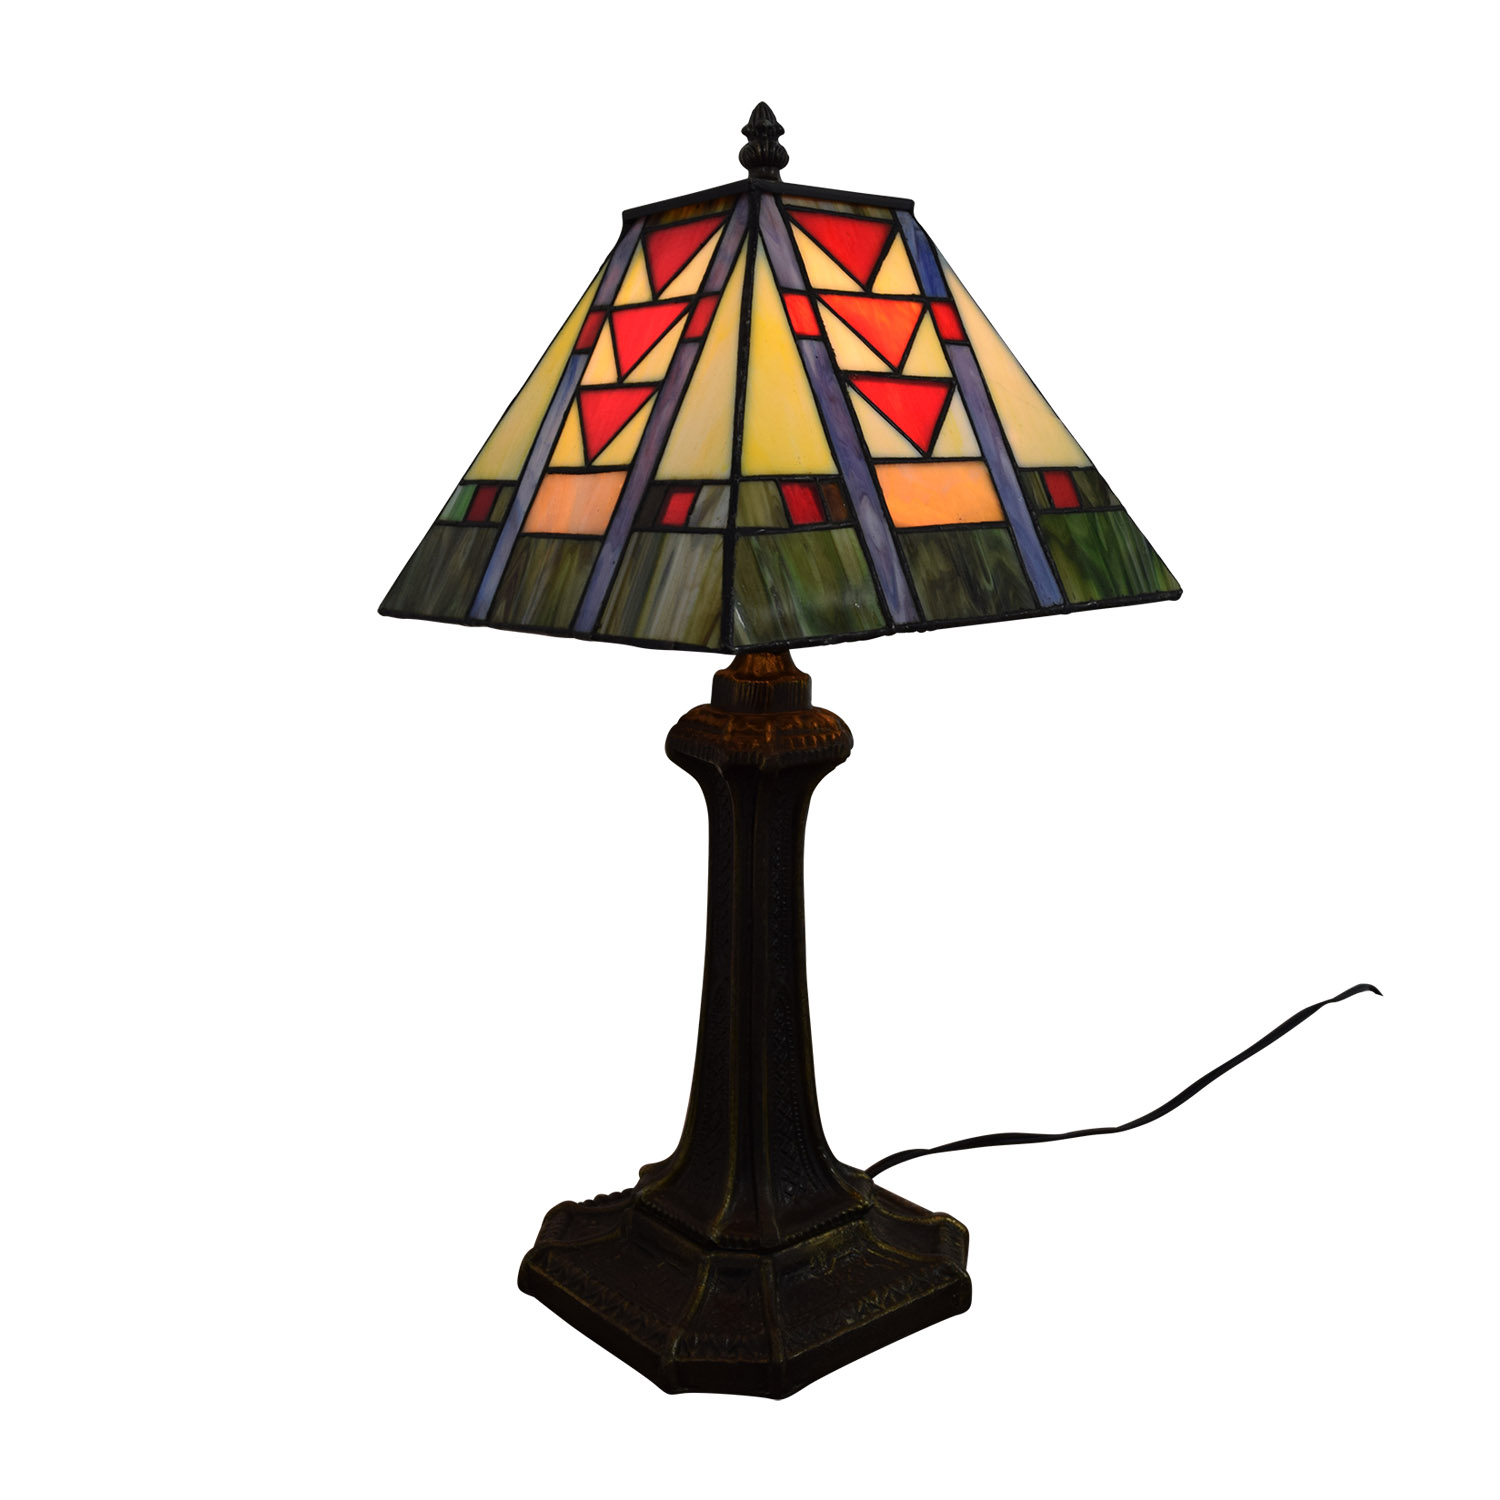 75 Off Tiffany Style Stained Glass Table Lamp Decor